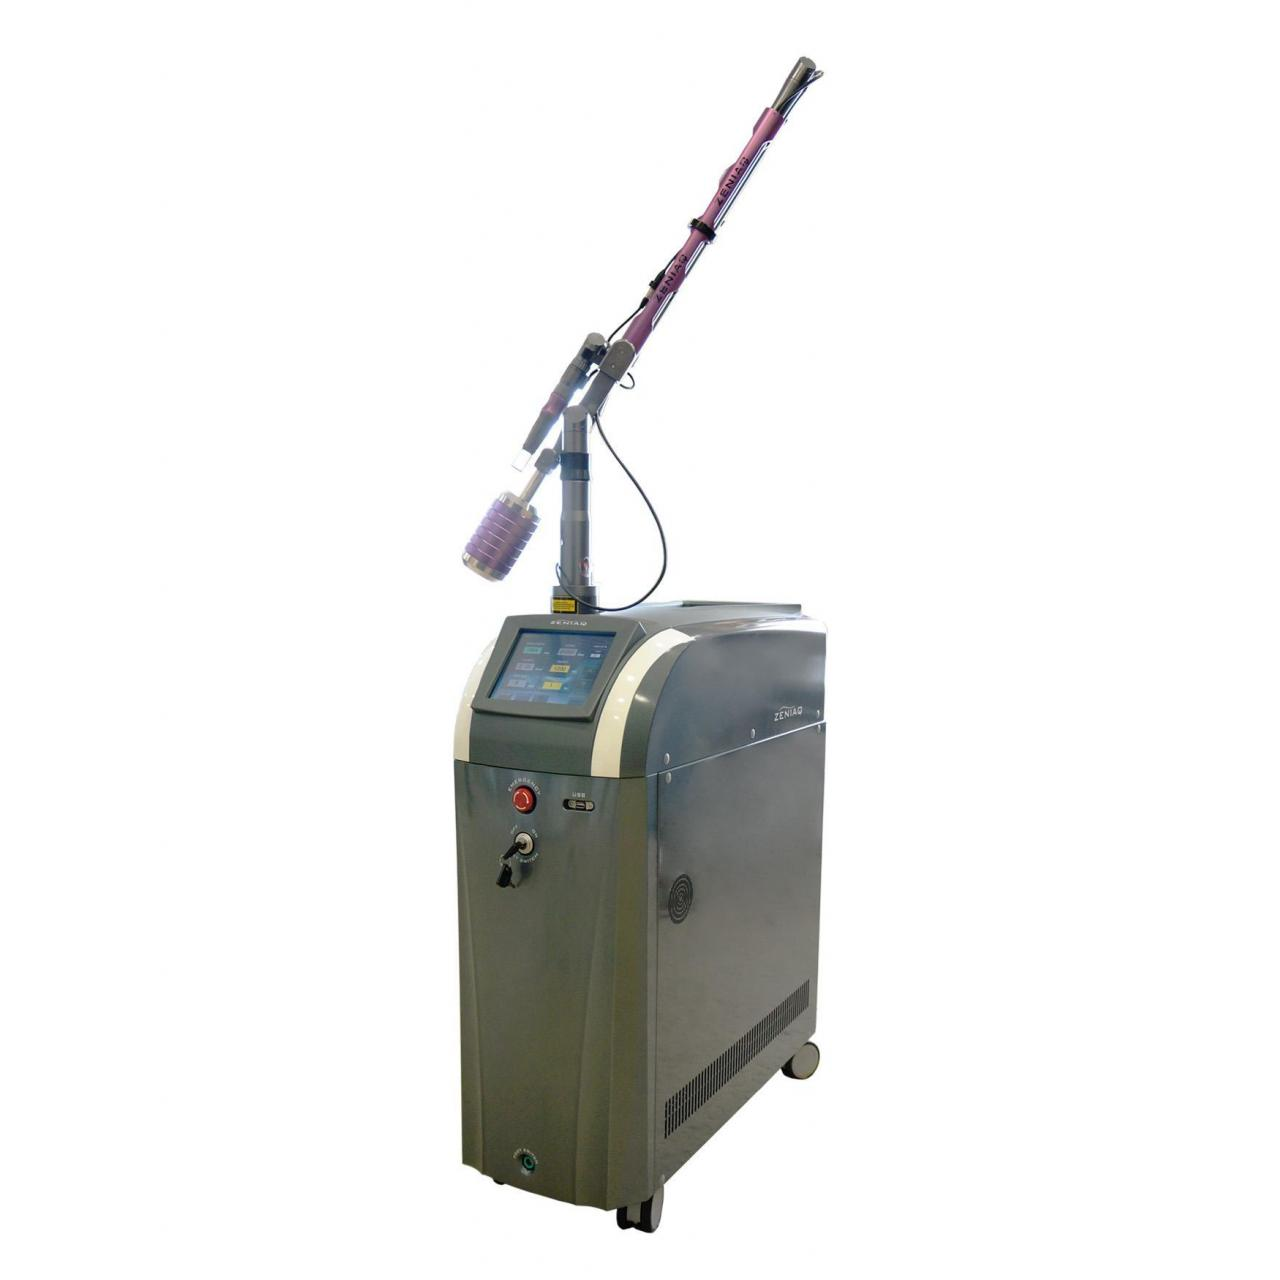 Buy cheap 3000NAIN Nd:YAG lase... 3000NAIN Nd: YAG Laser from wholesalers